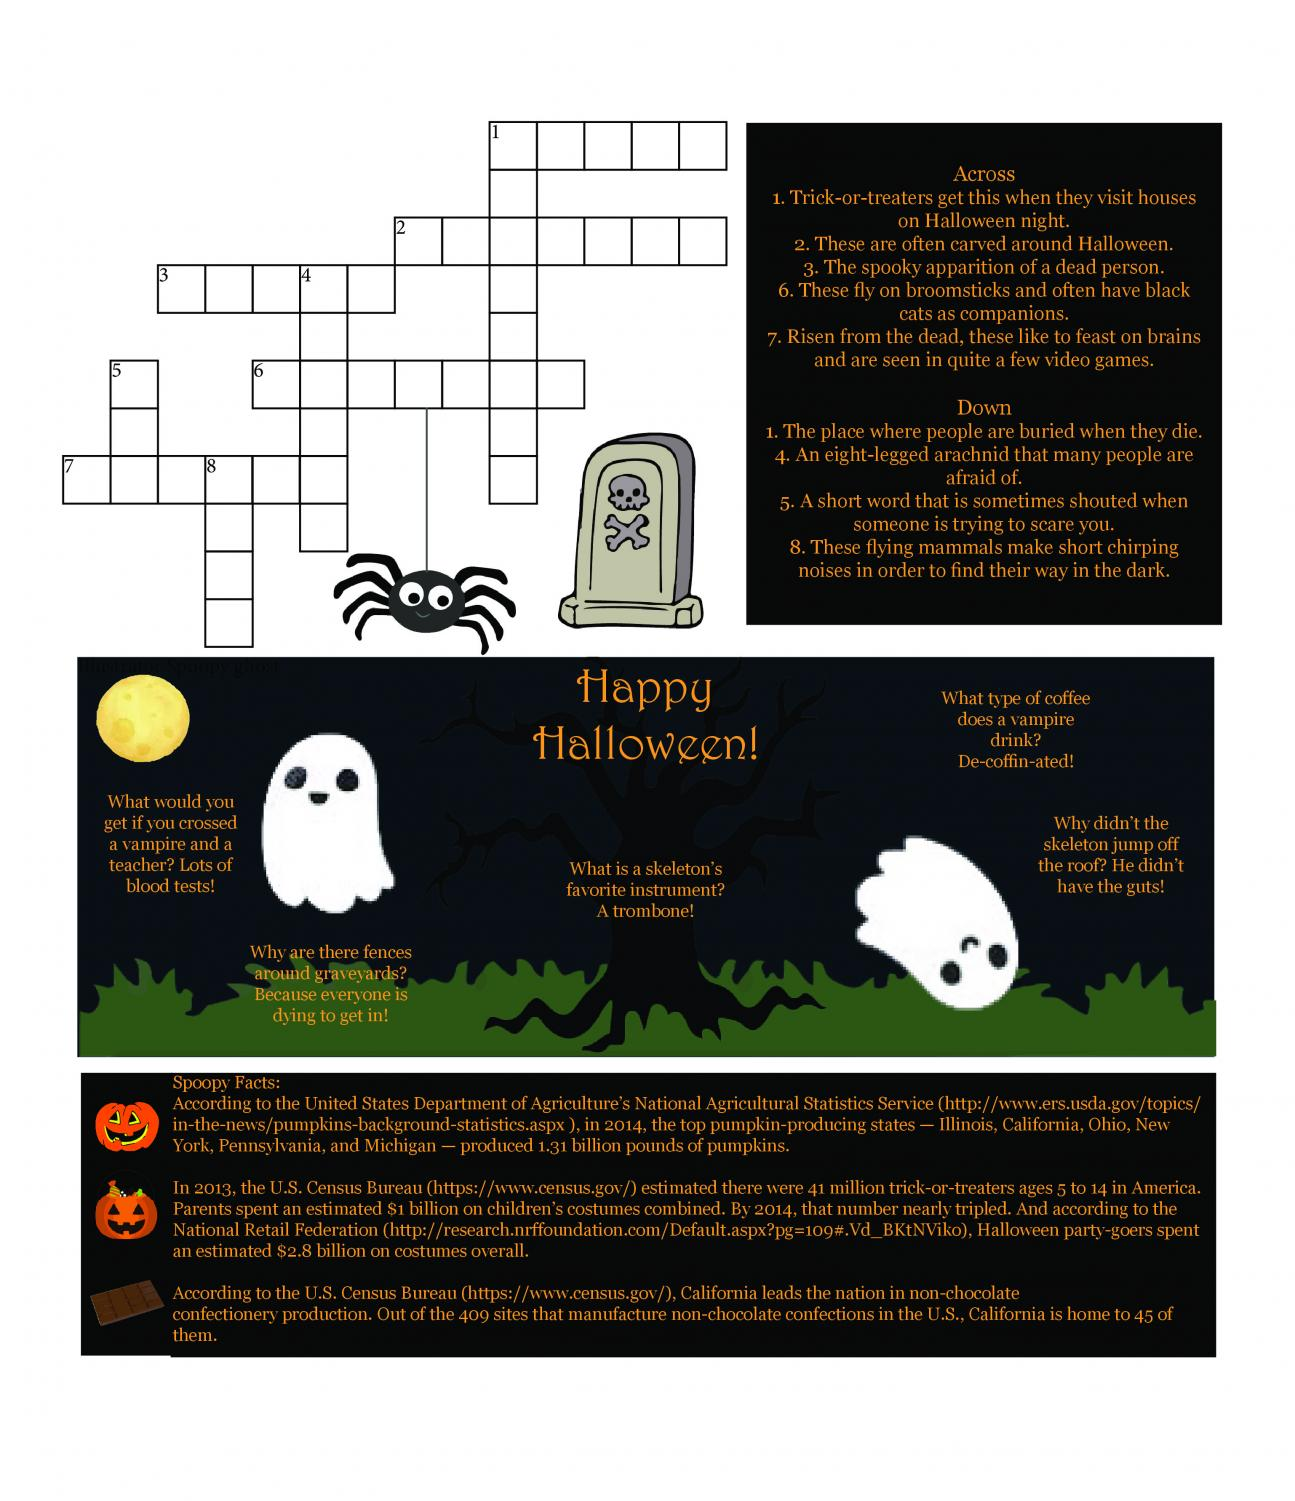 Enjoy some good spooky fun with this Halloween puzzle page! Crosswords, jokes, facts, and more poured into just one page? We must be crazy!